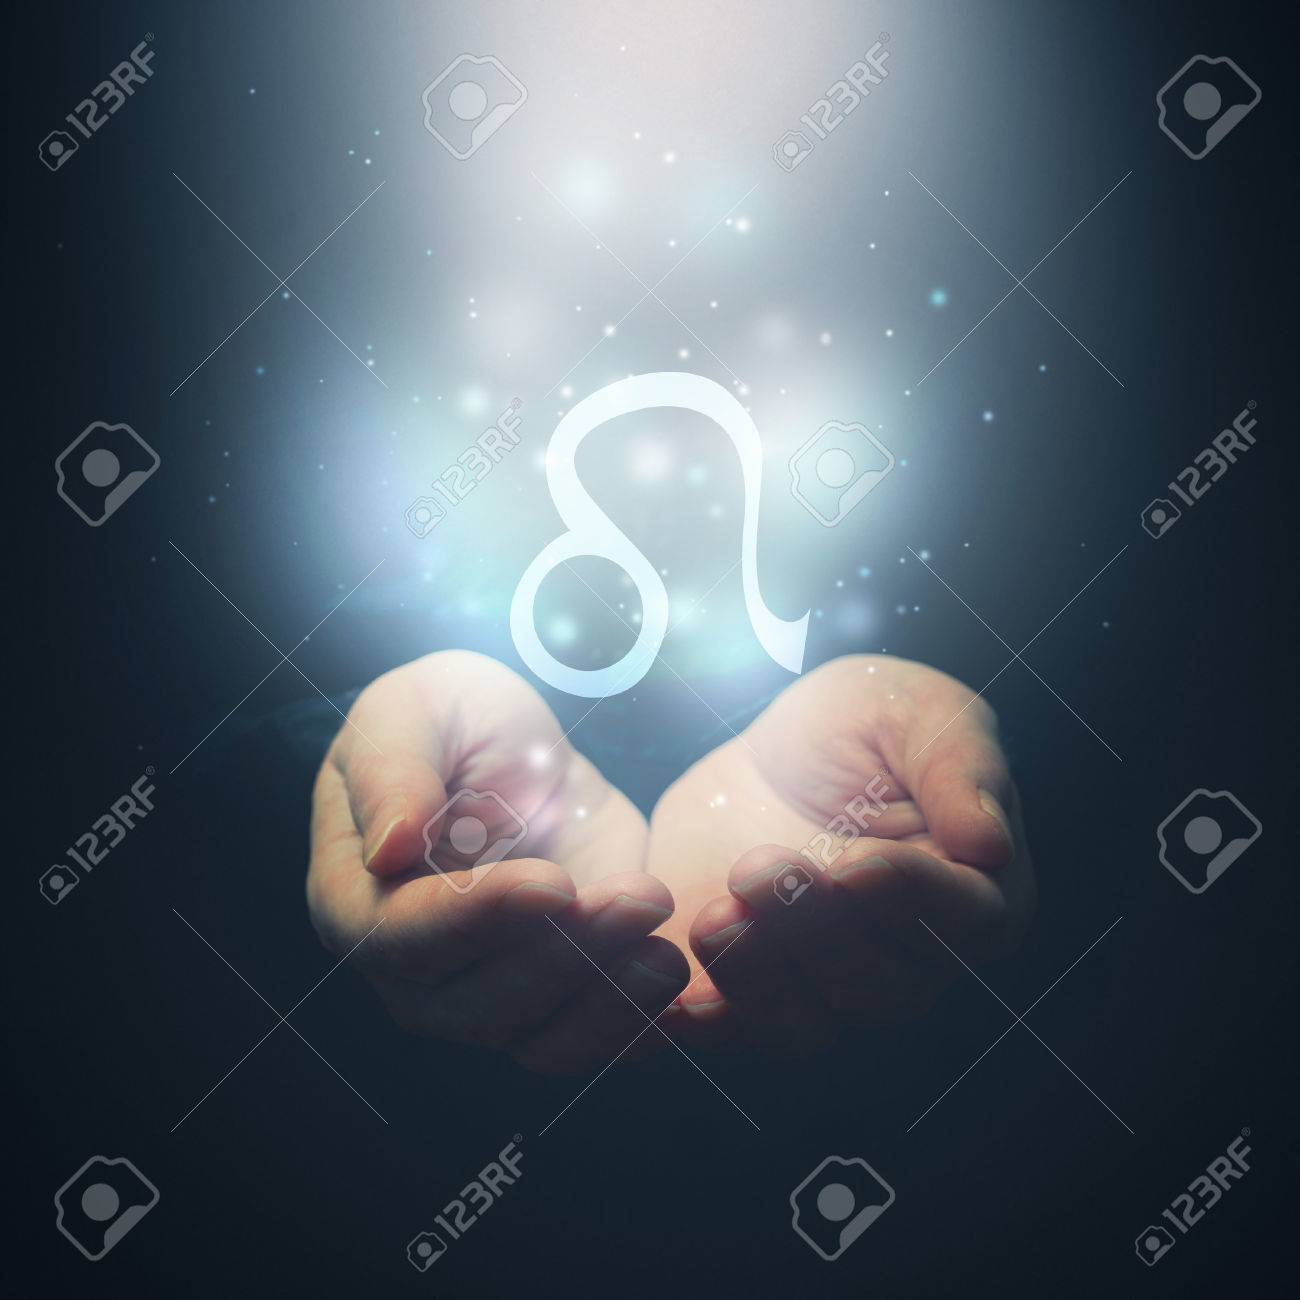 Female hands opening to light and holding zodiac sign for leo female hands opening to light and holding zodiac sign for leo horoscope symbols selective focus stock biocorpaavc